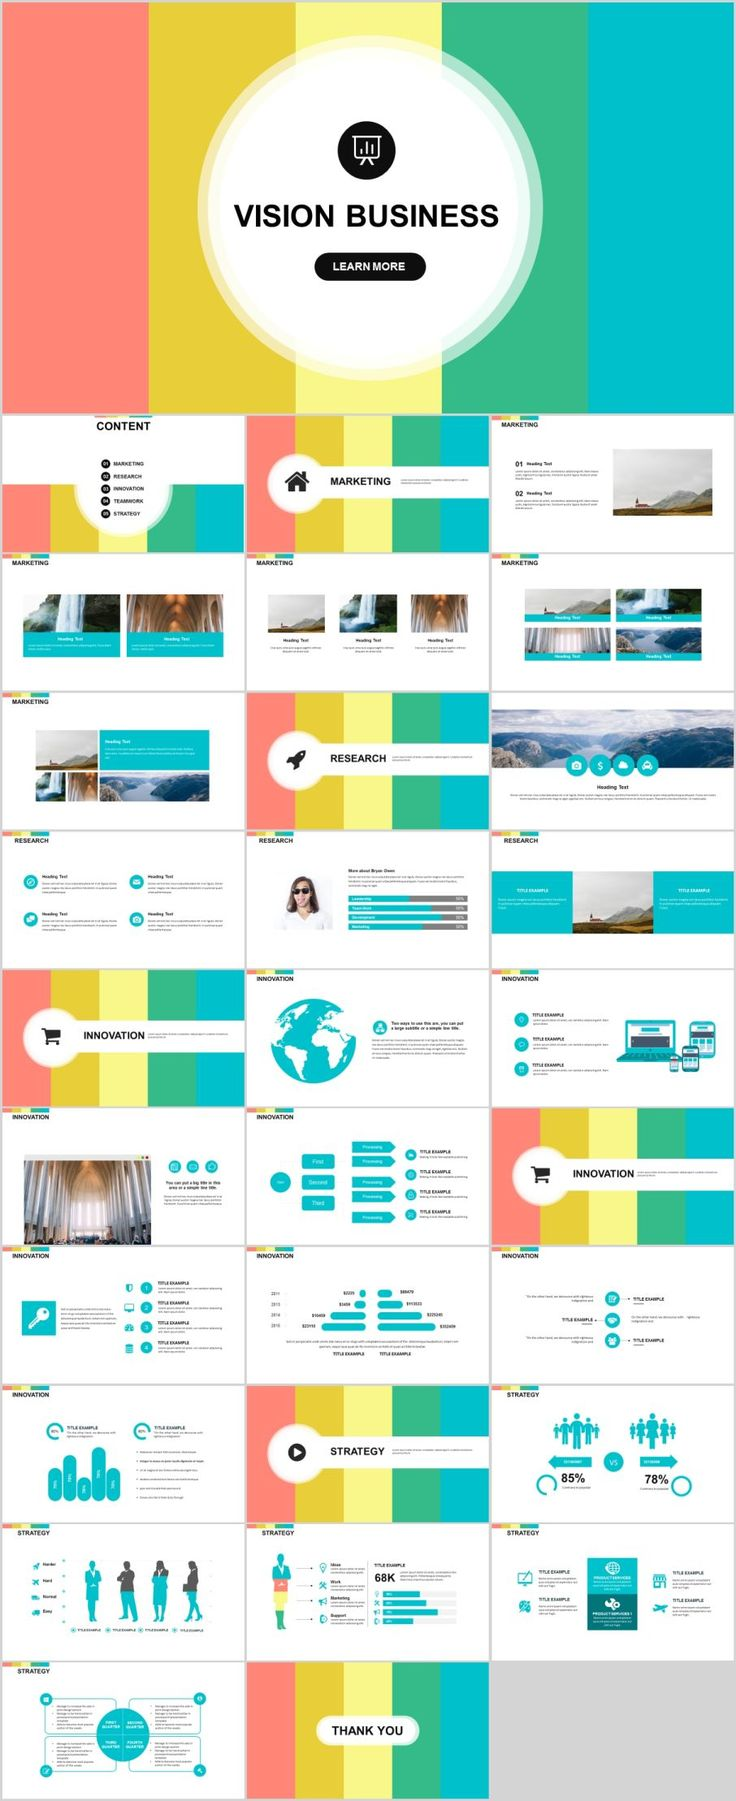 The 62 best modern powerpoint templates images on pinterest 30 business vision design powerpoint templates toneelgroepblik Image collections